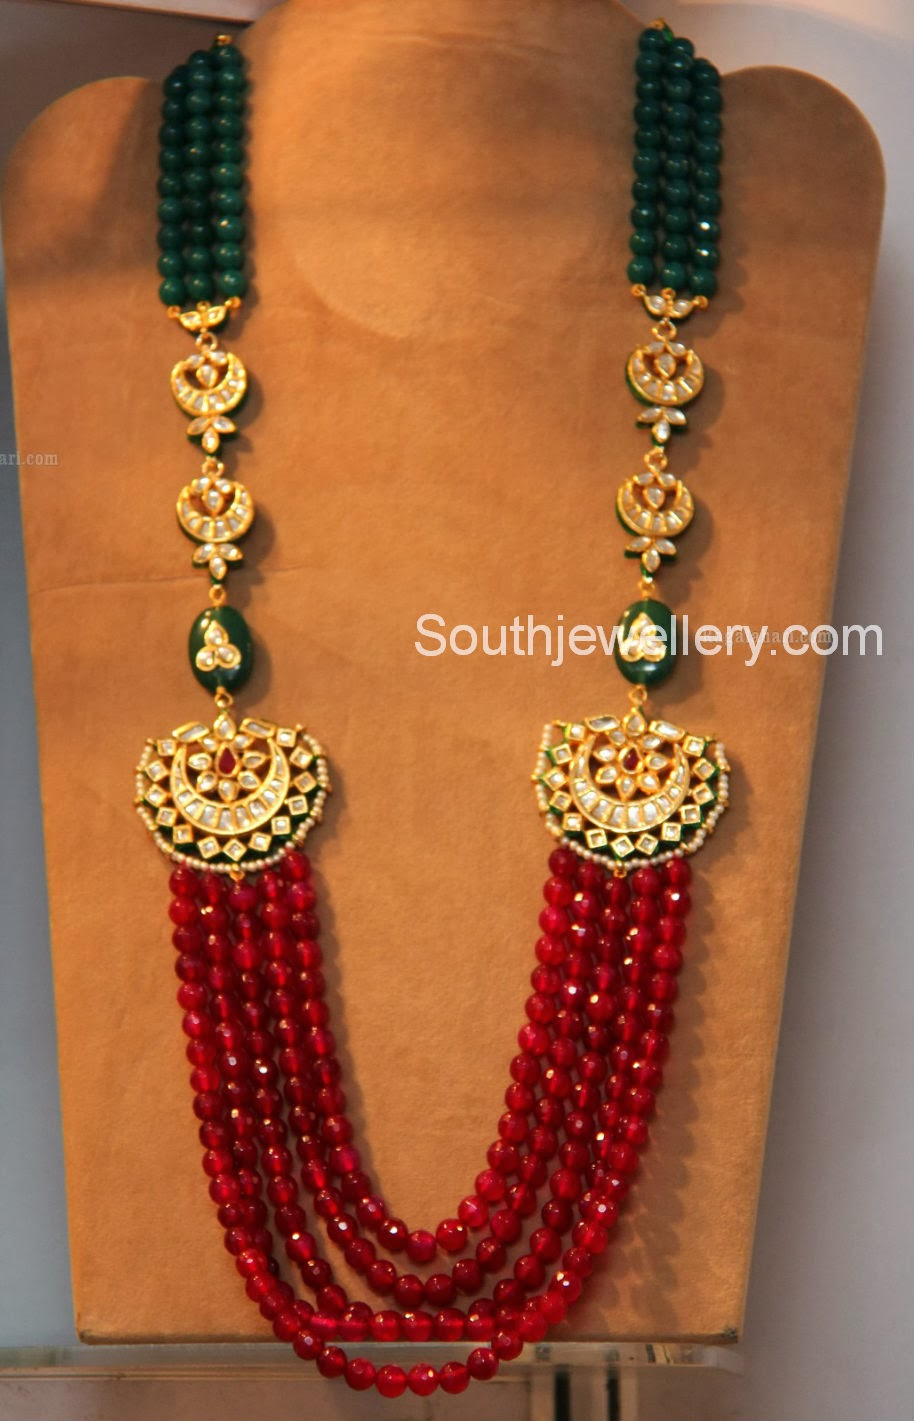 Beaded fashion jewellery jewellery designs Design and style fashion jewelry